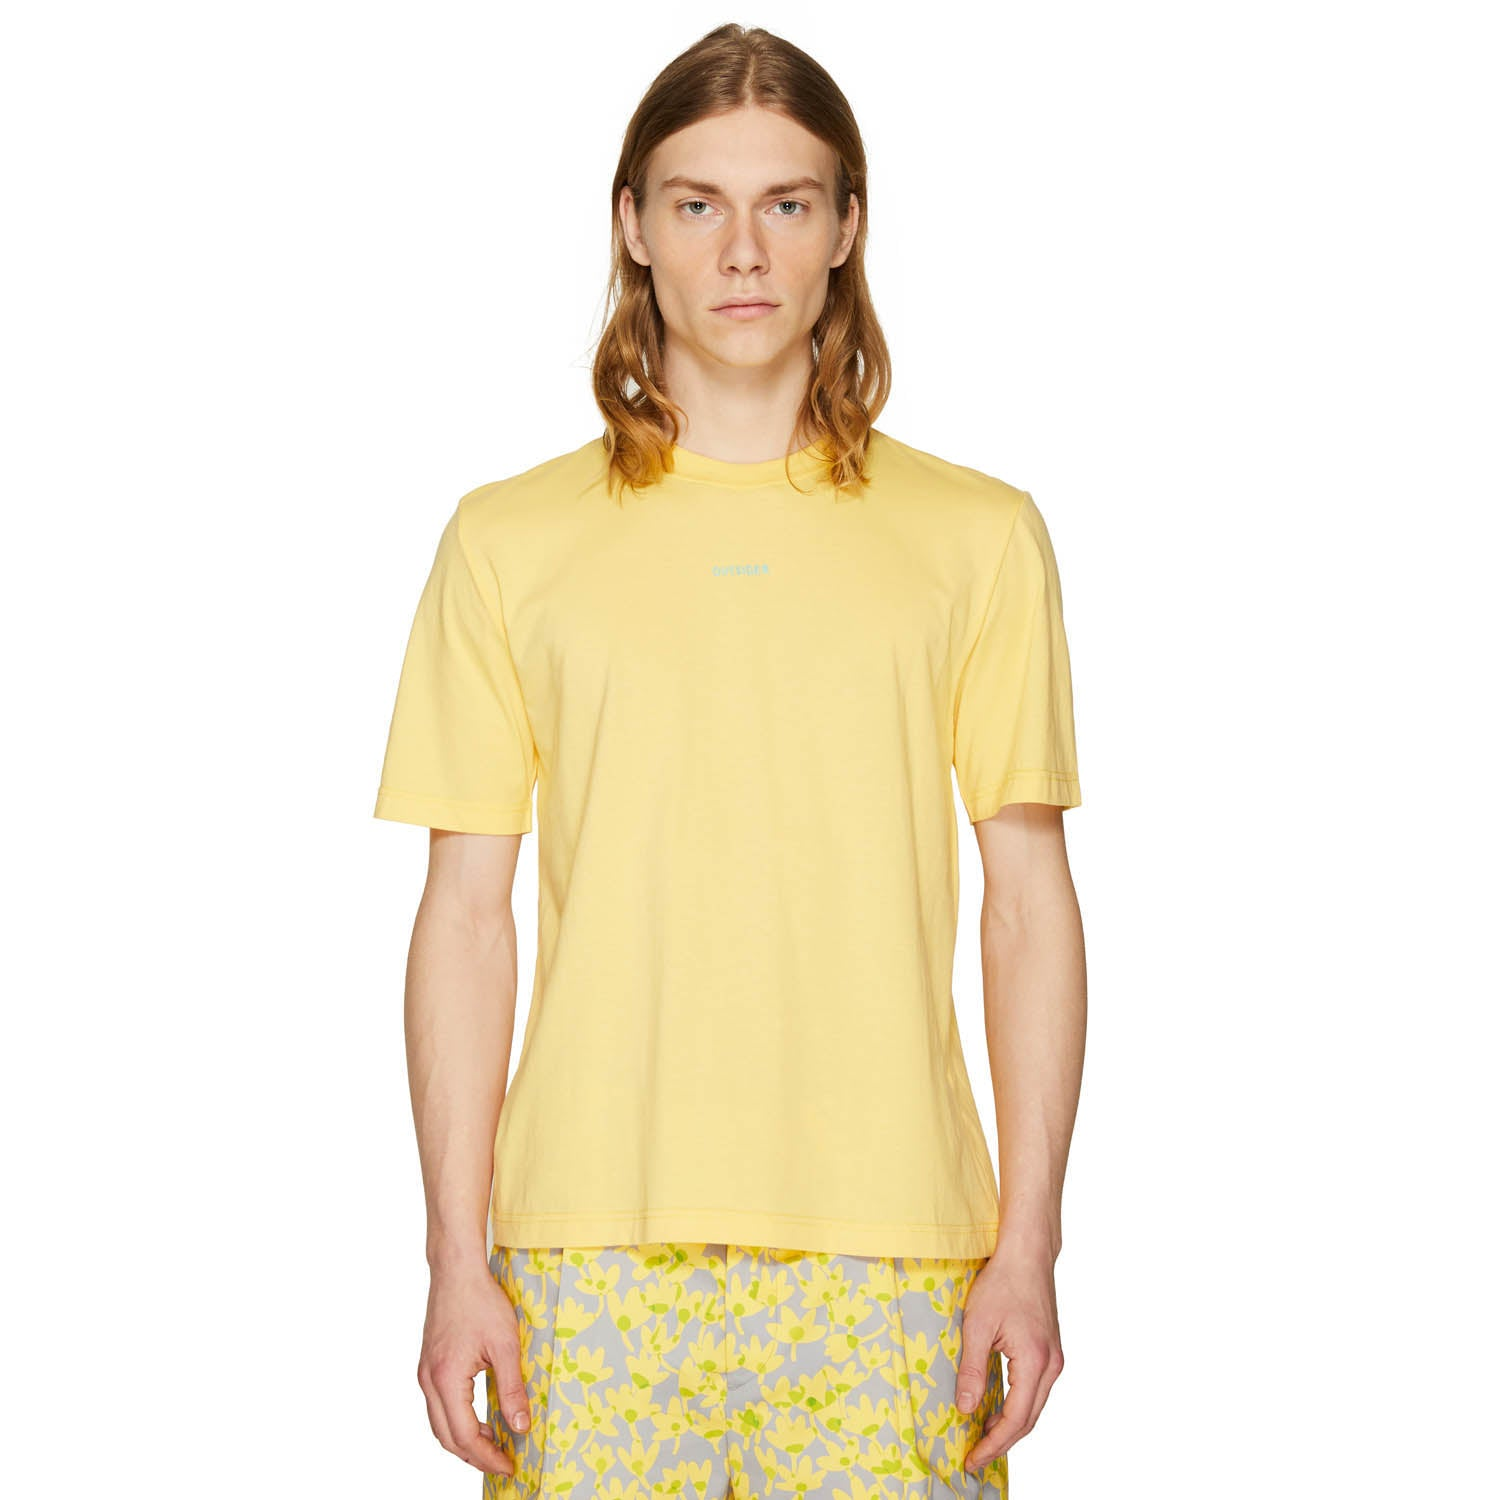 OUTSIDER T-SHIRT LEMON YELLOW